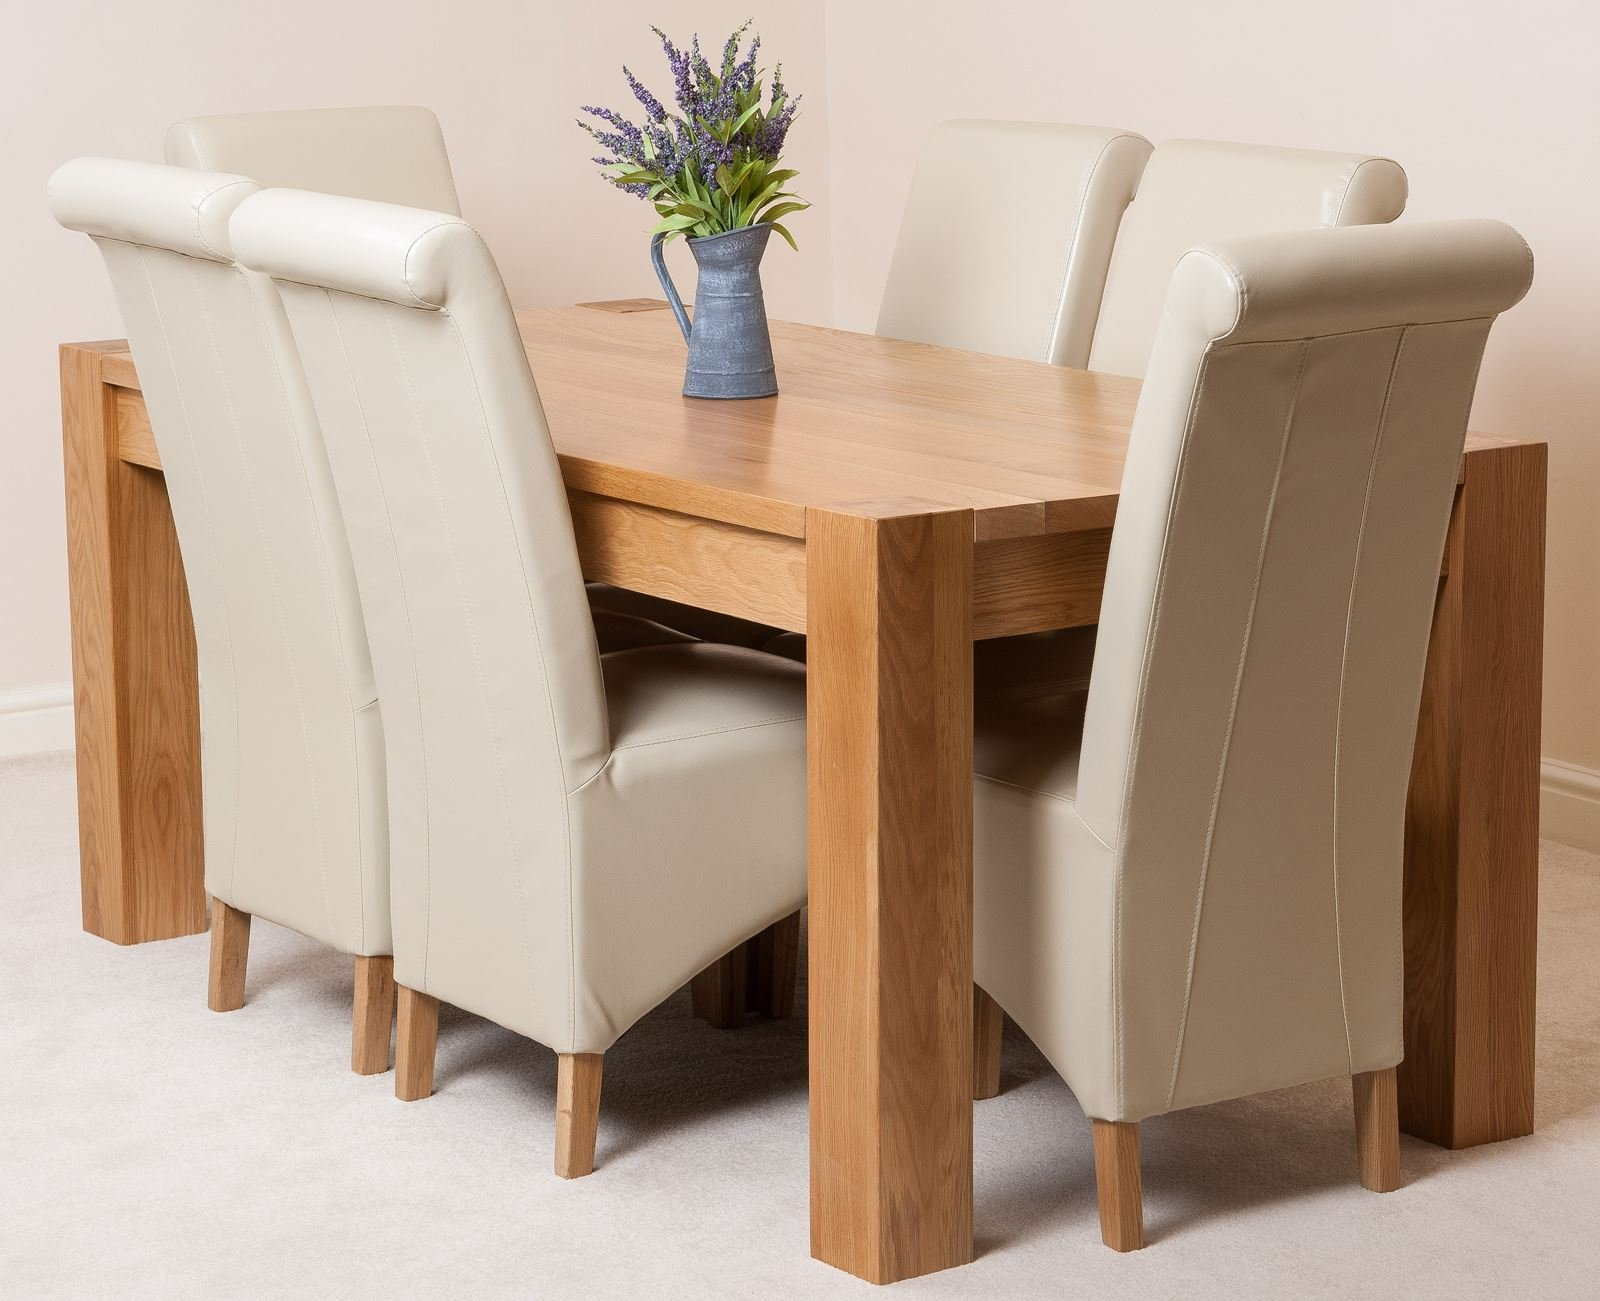 Kuba 6 Seater Dining Table And Chairs 6ft Chunky Solid Oak Dining Table And 6